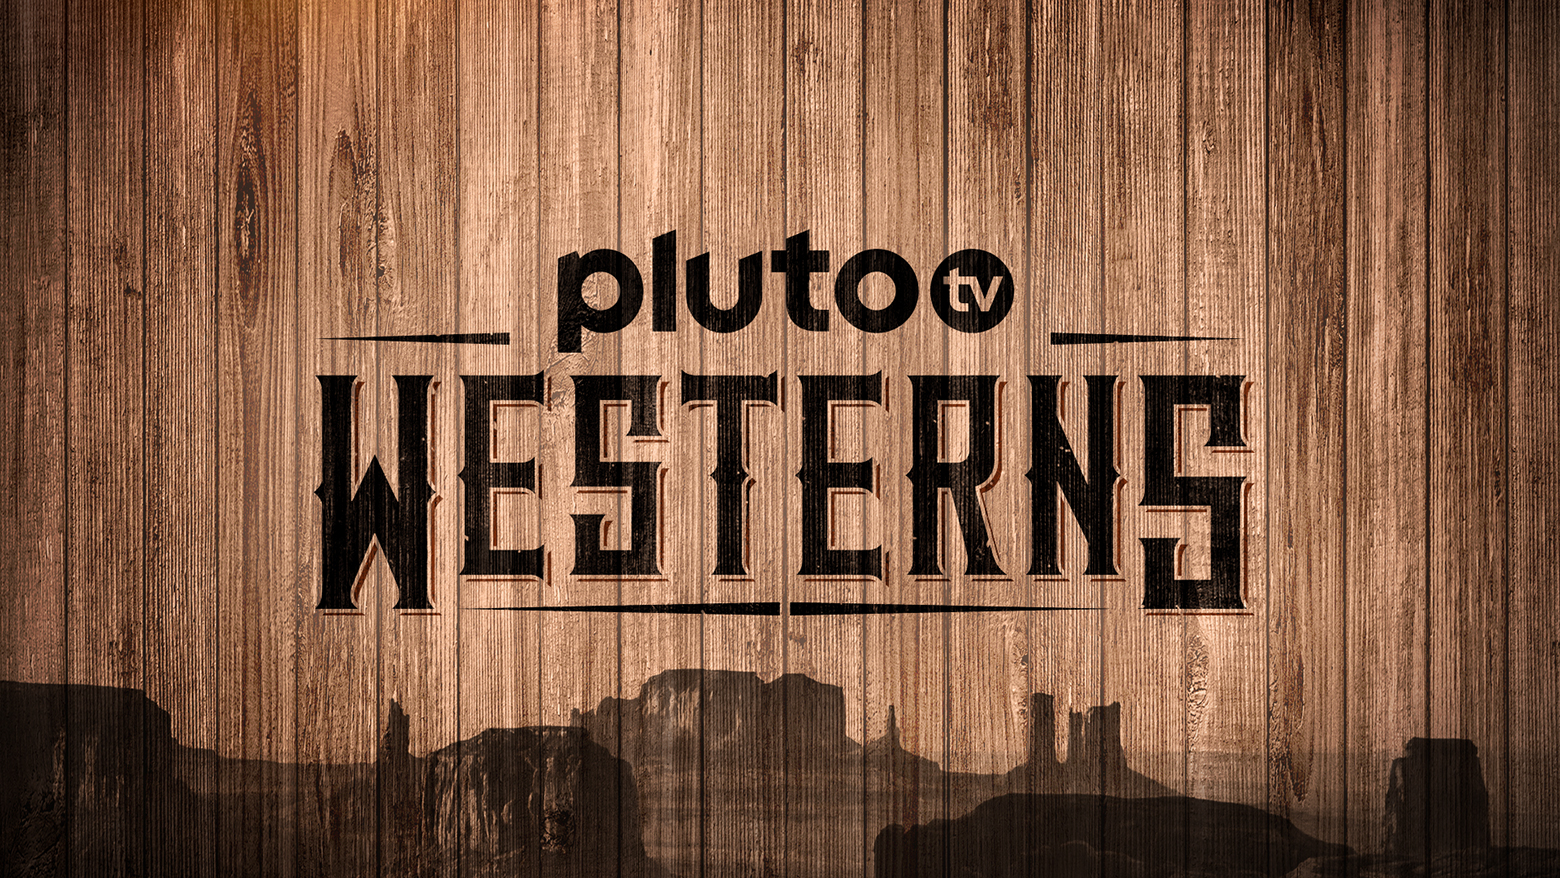 Watch The Cmt Westerns Channel Ch 84 On Pluto Tv